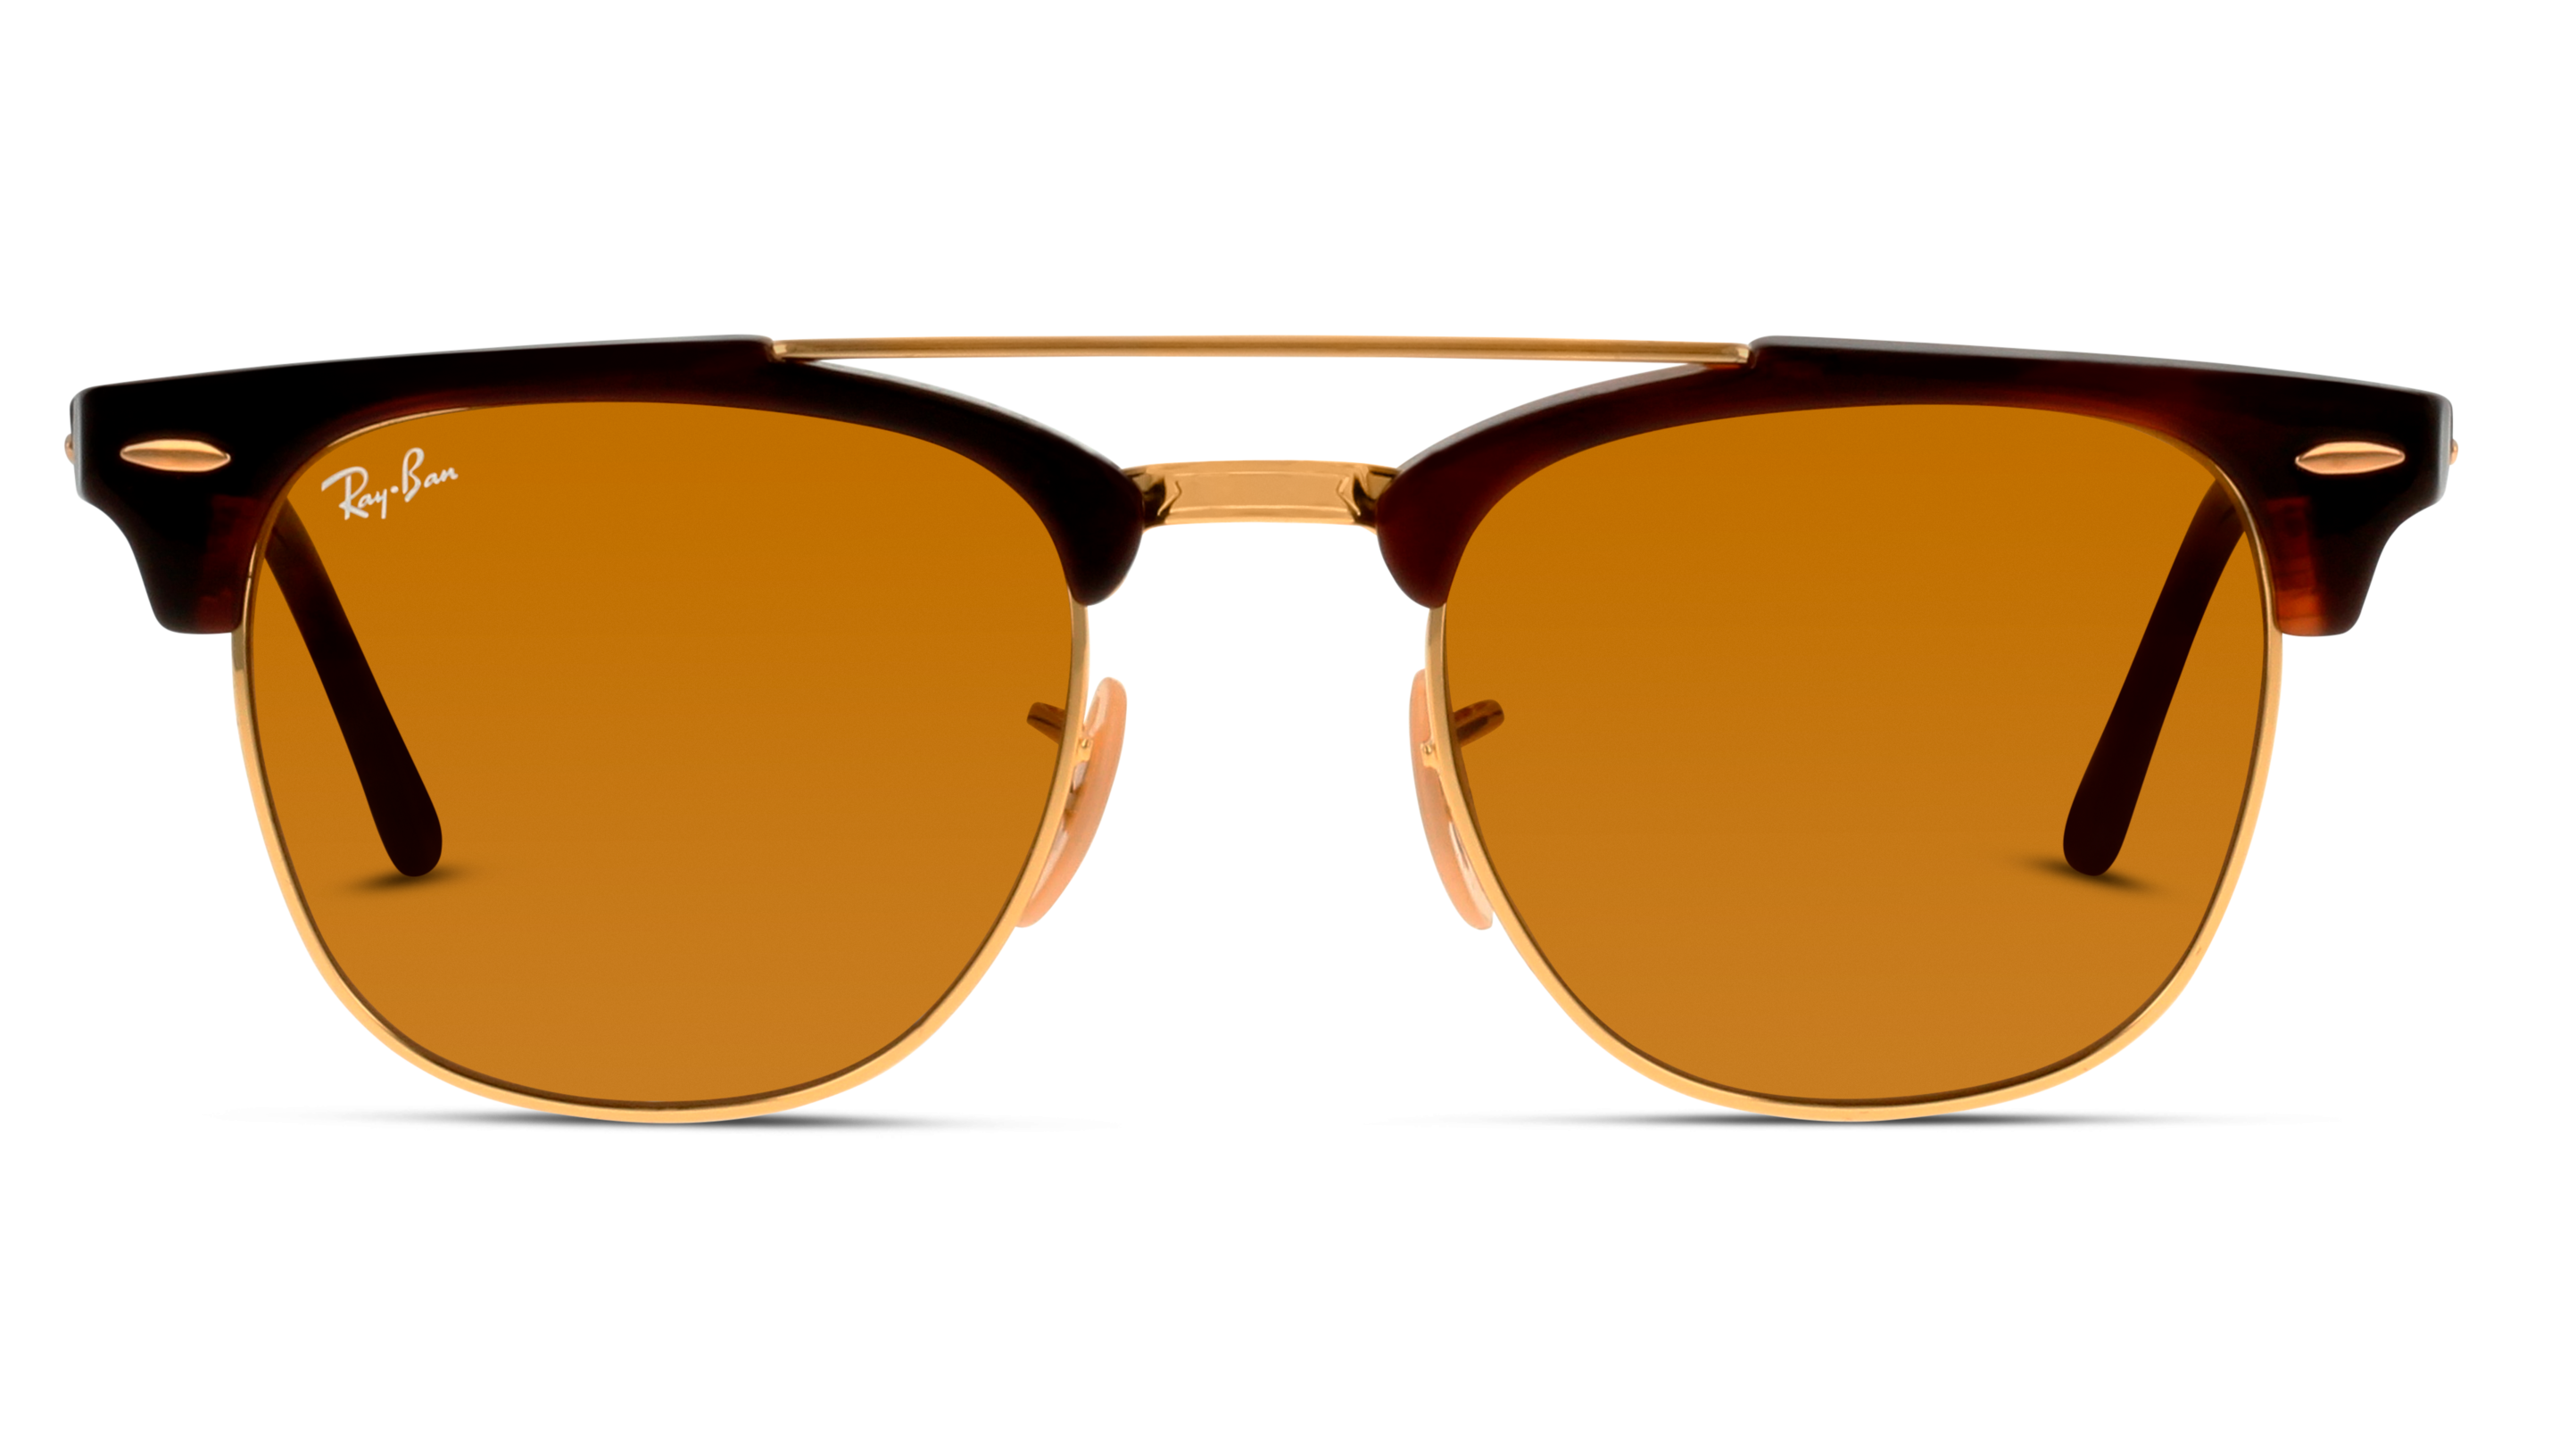 Front Ray-Ban Ray-Ban 0RB3816 990/33 51/21 Goud/Bruin